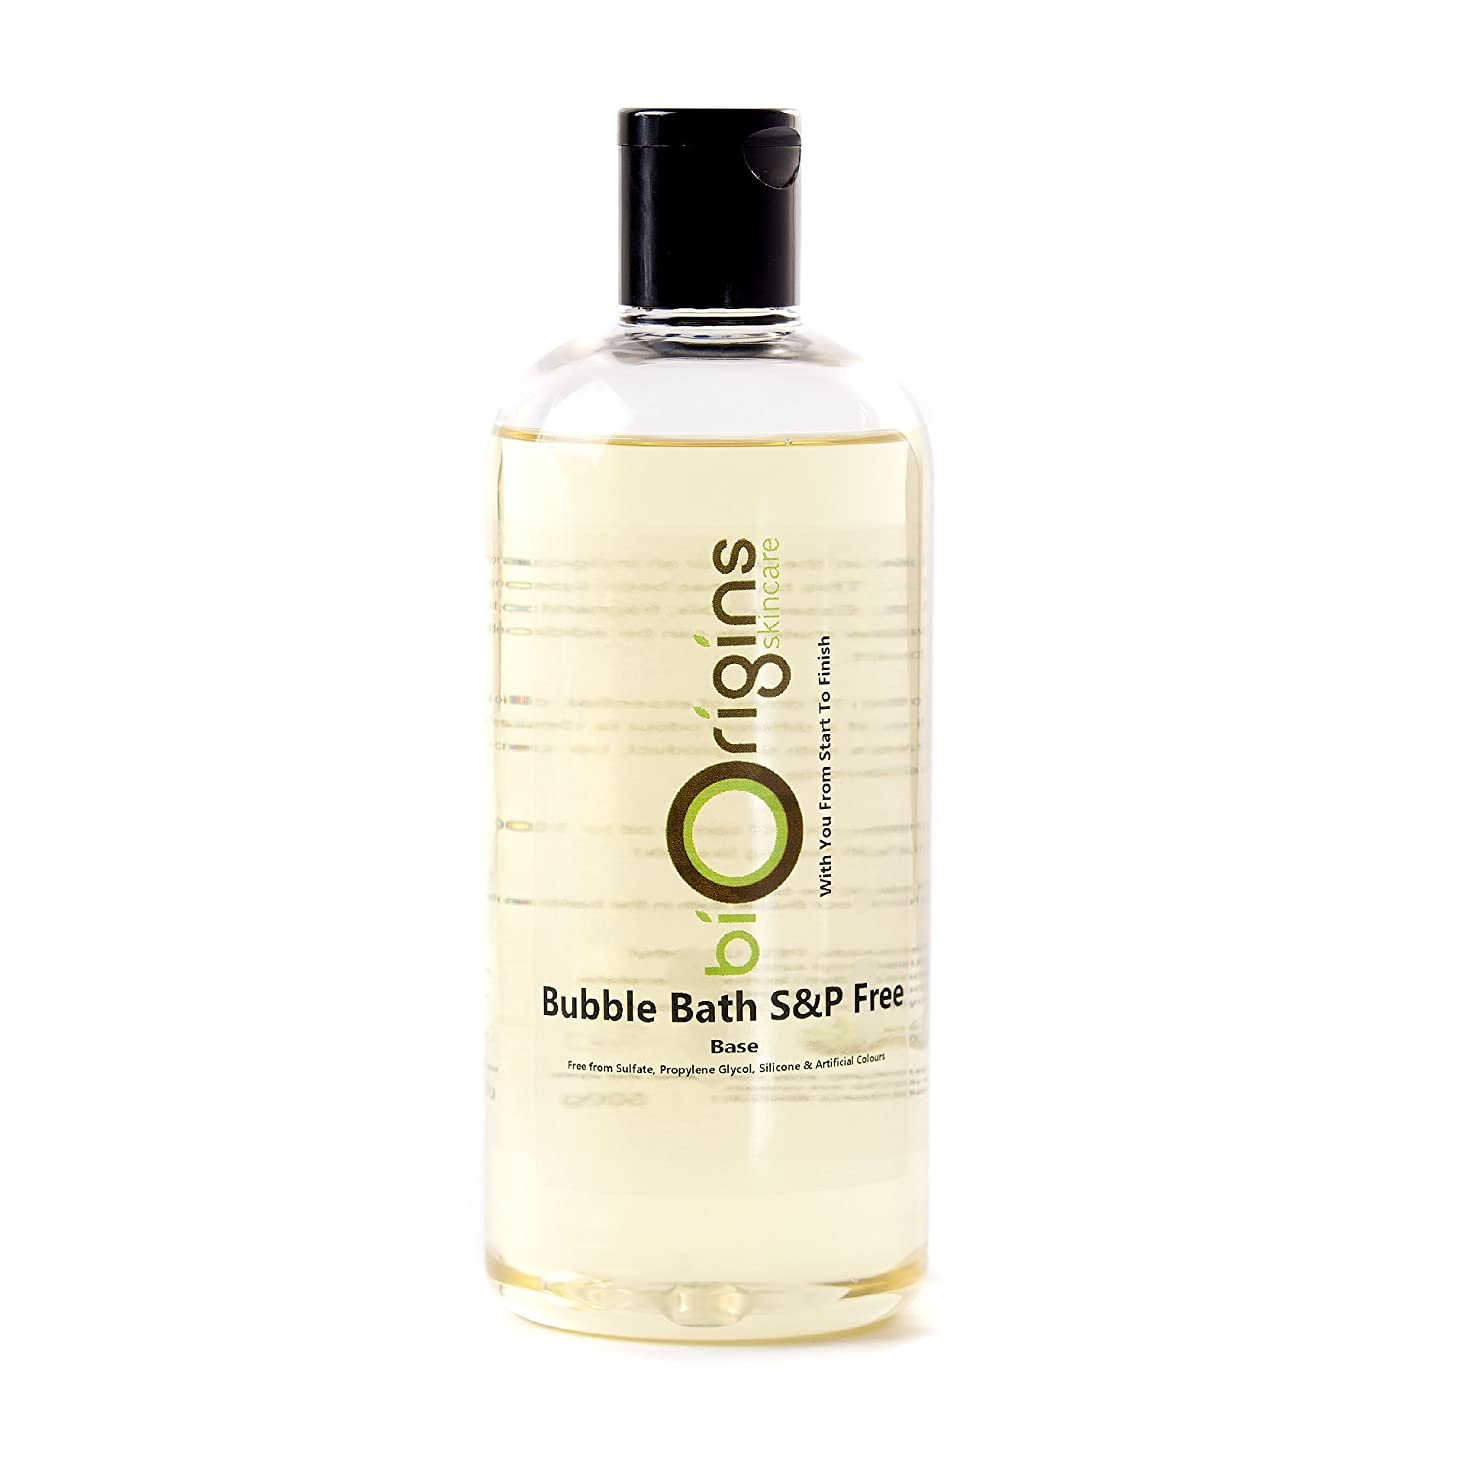 彼自身さびた貞Bubble Bath Base - SLS & Paraben Free - 500g